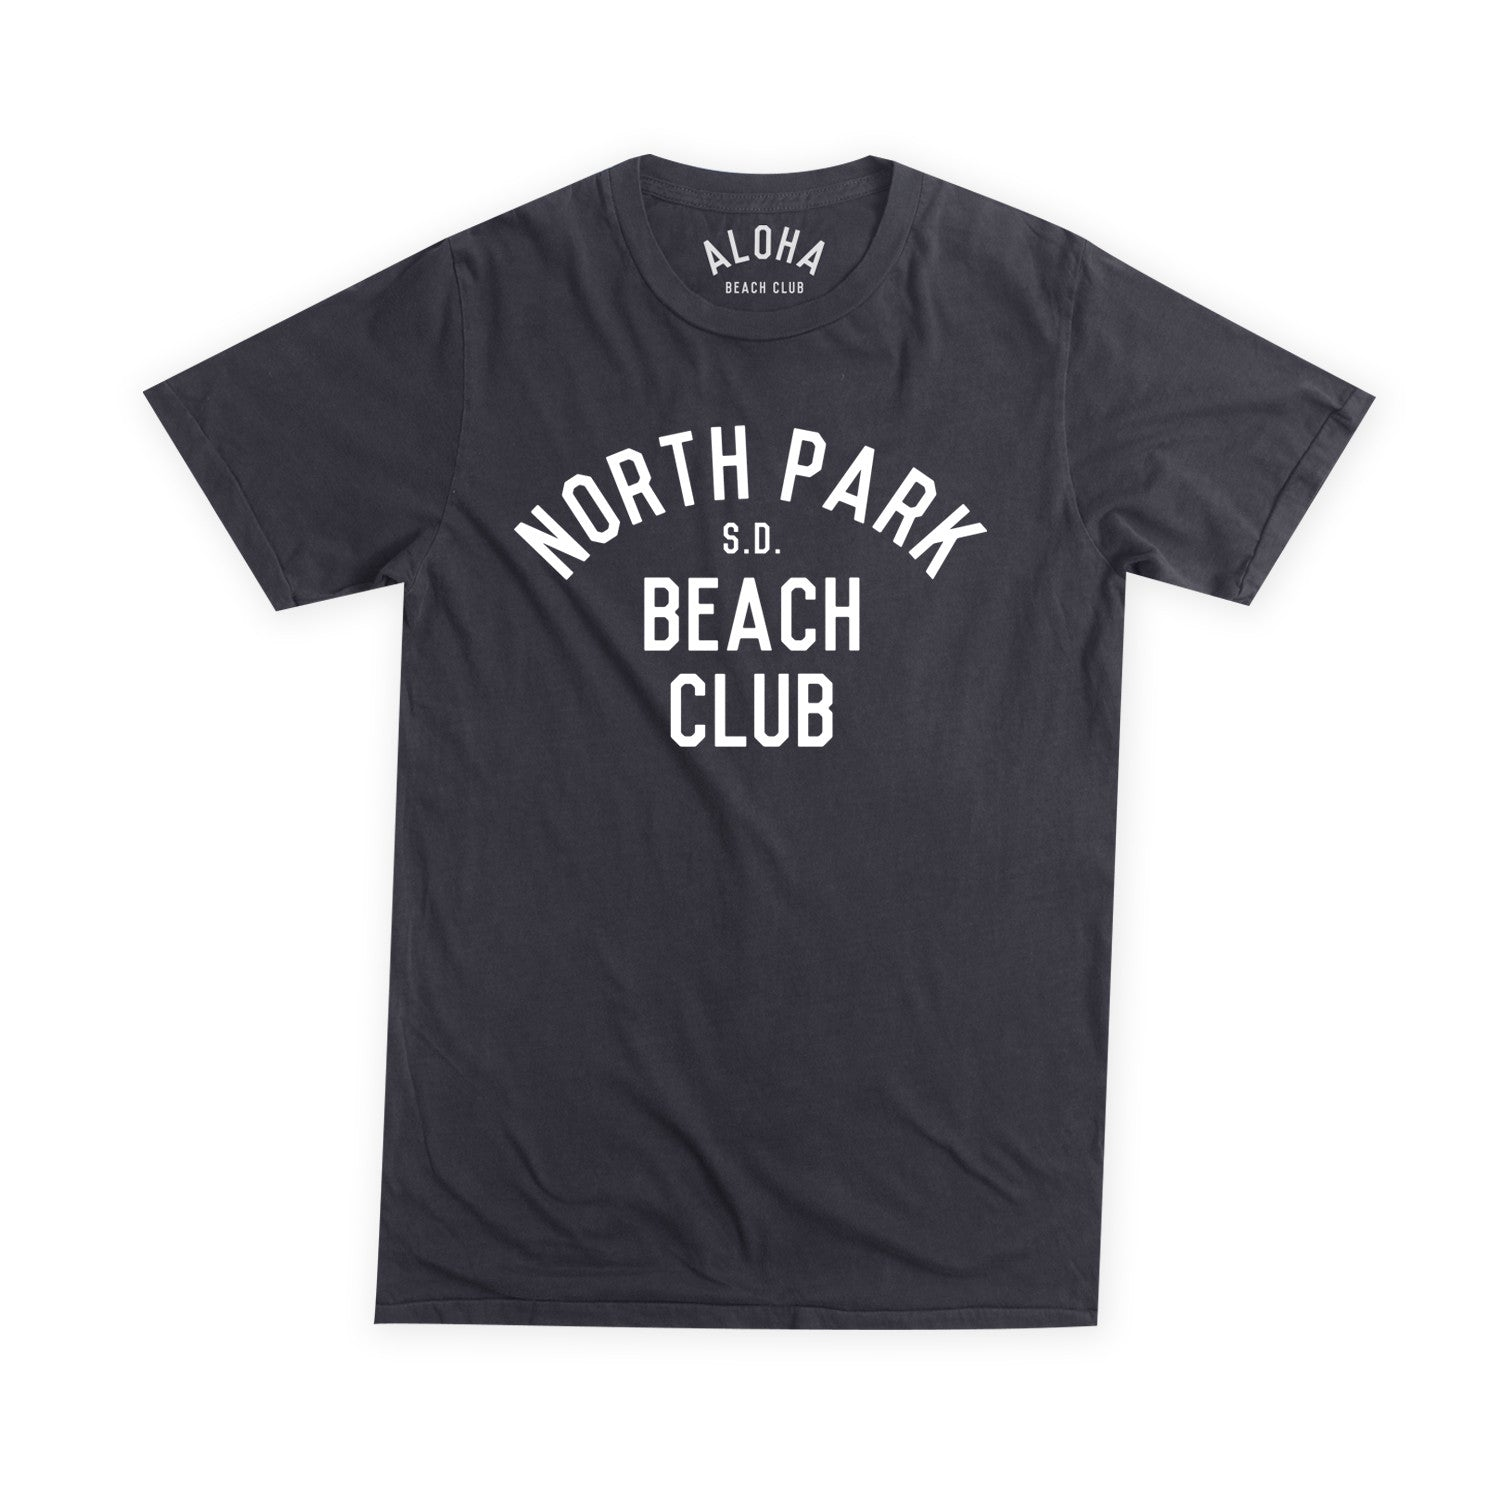 Aloha Beach Club - 6 Year North Park Tee - Aloha Beach Club